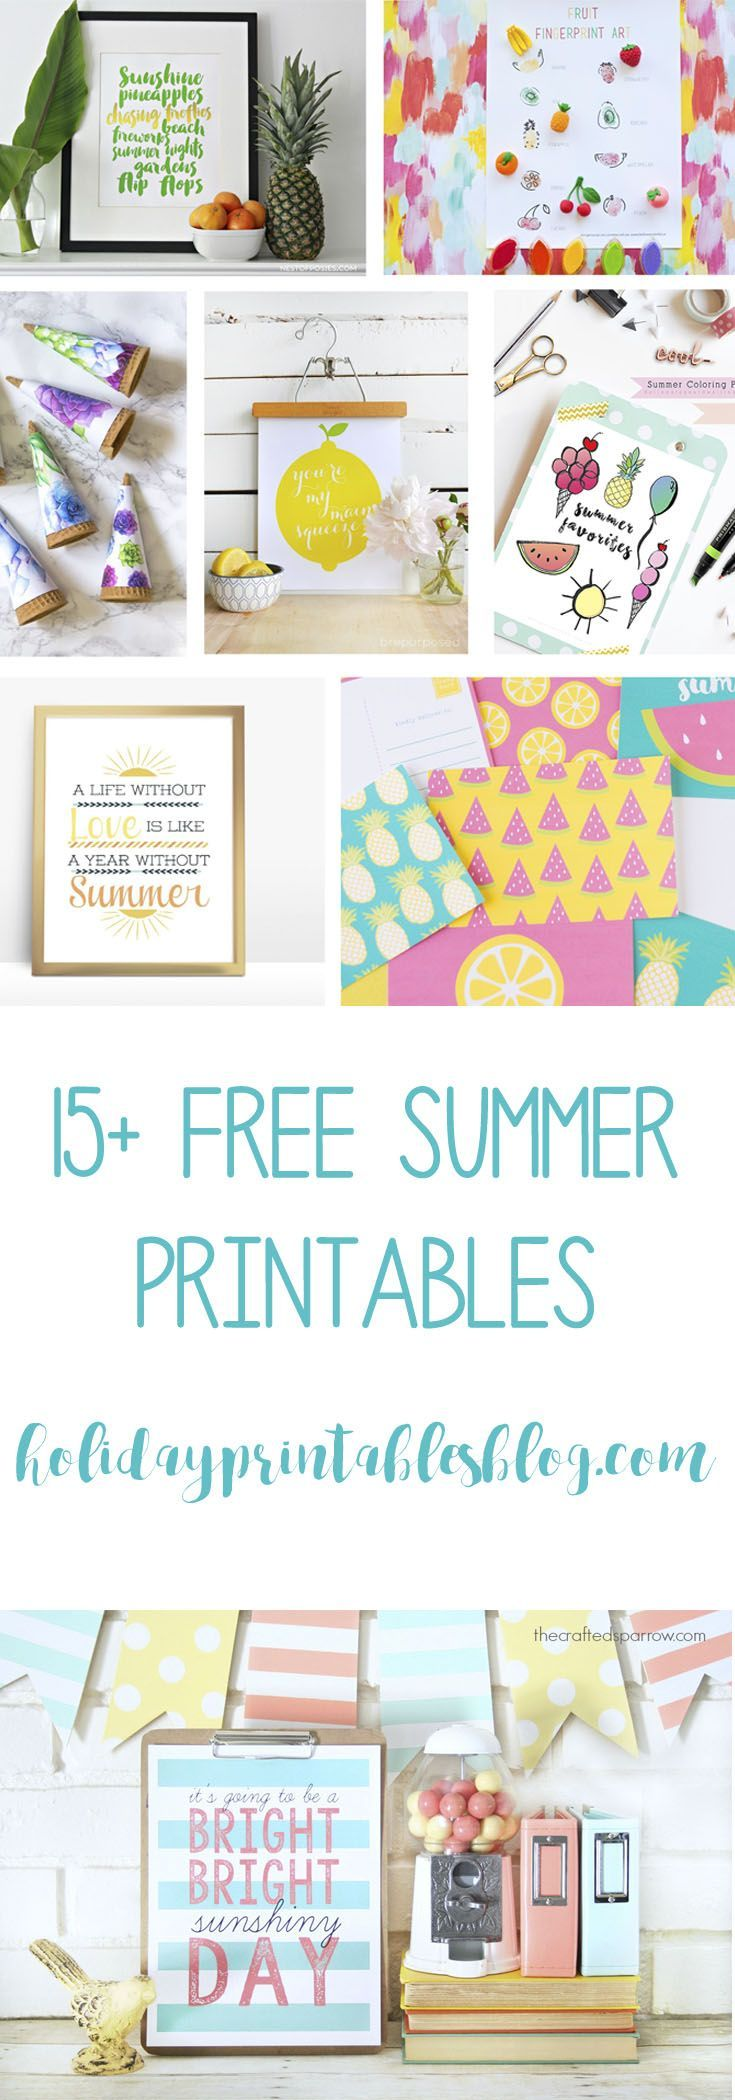 Some of my favorite summer printable artall in one post lots of